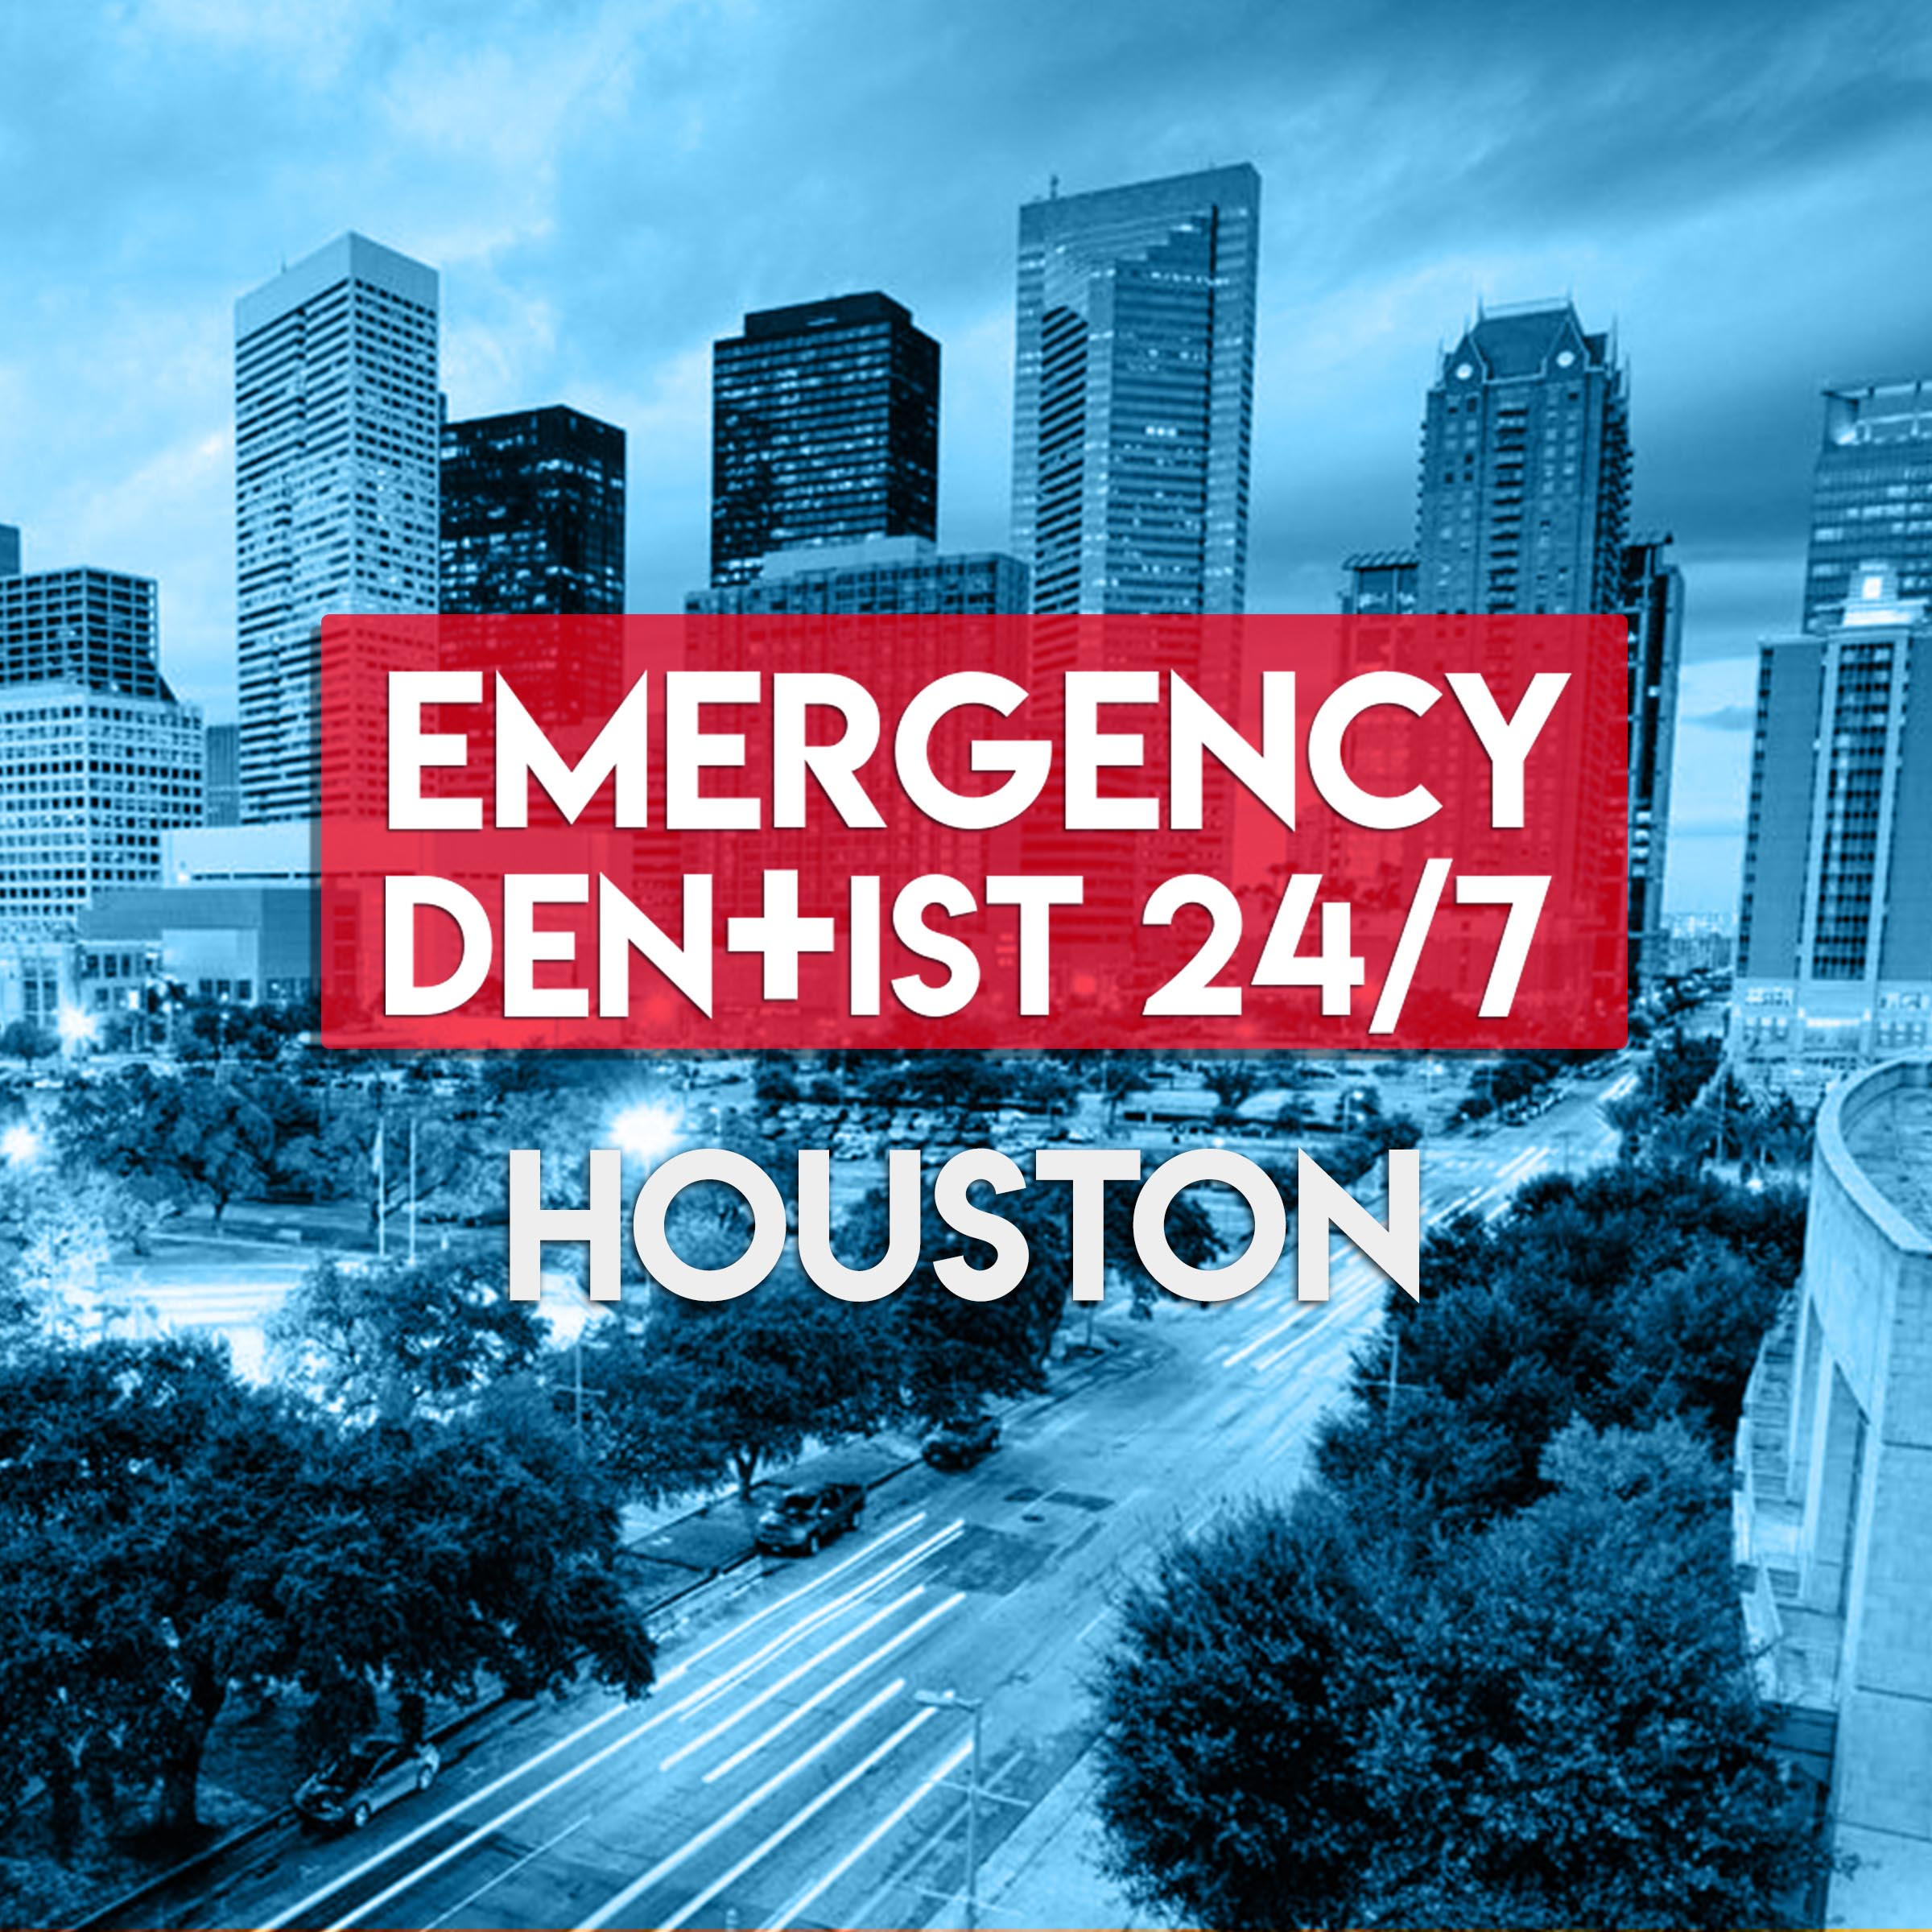 emergency dentist houston 247 profile logo